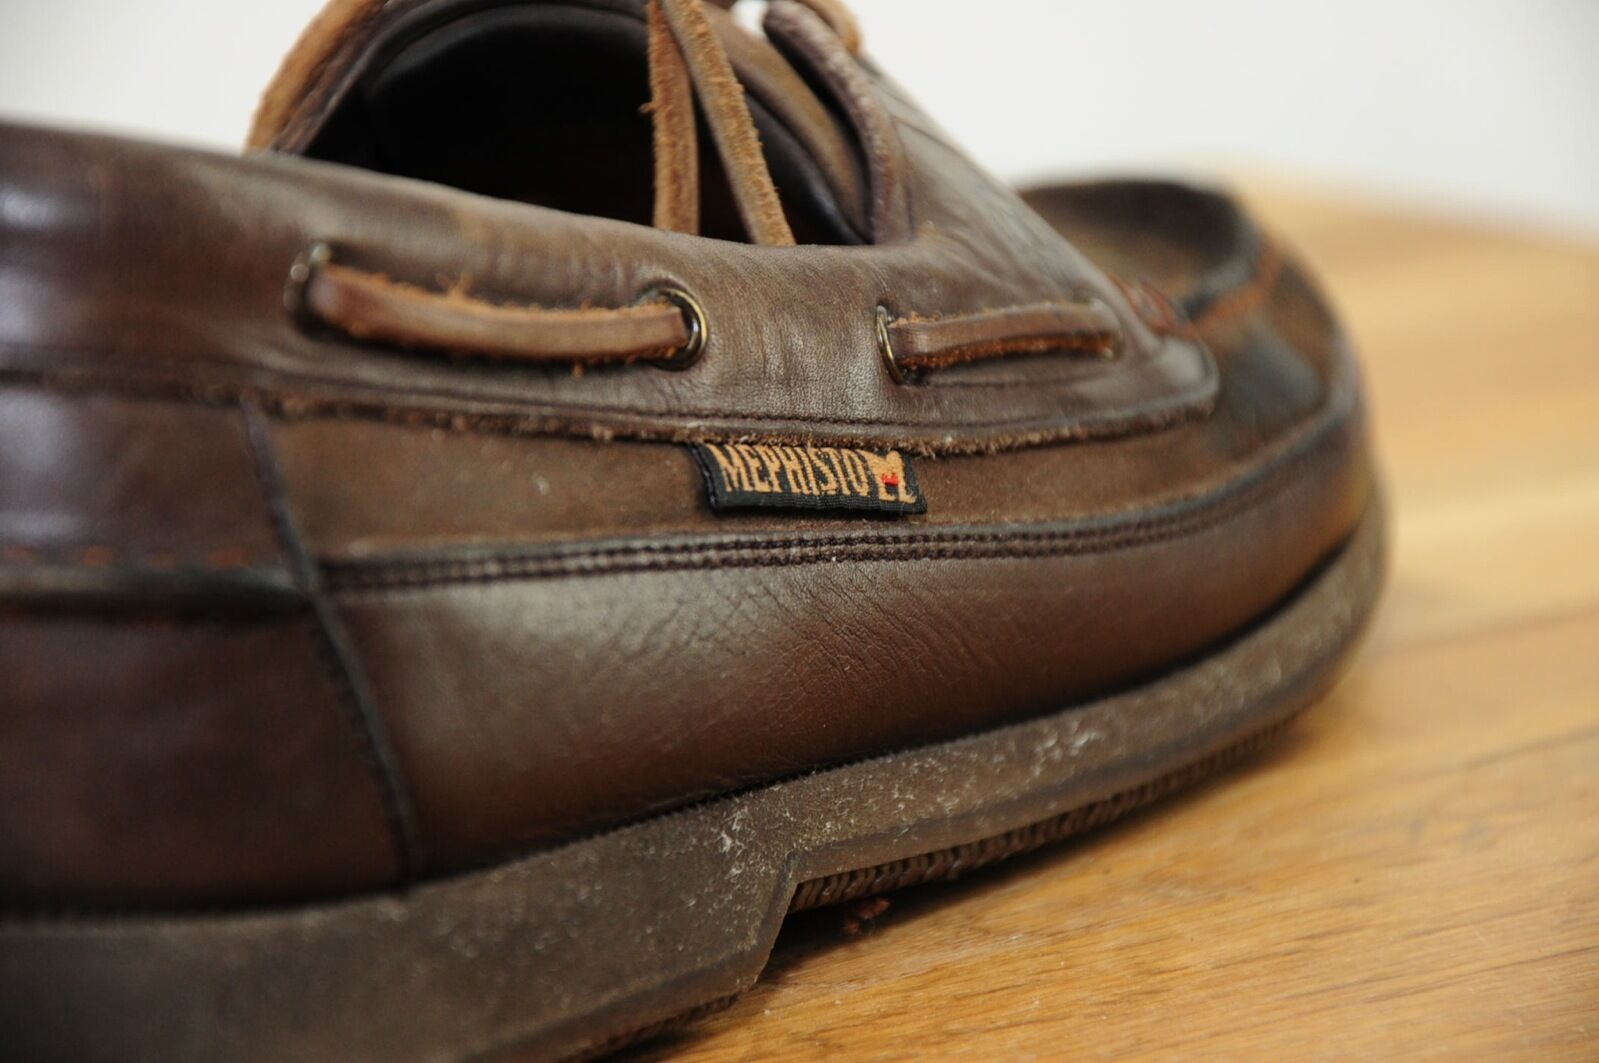 Mephisto Hurrikan Spinaker Brown Suede & Pelle Uomo's Boat Shoes 9M Portugal